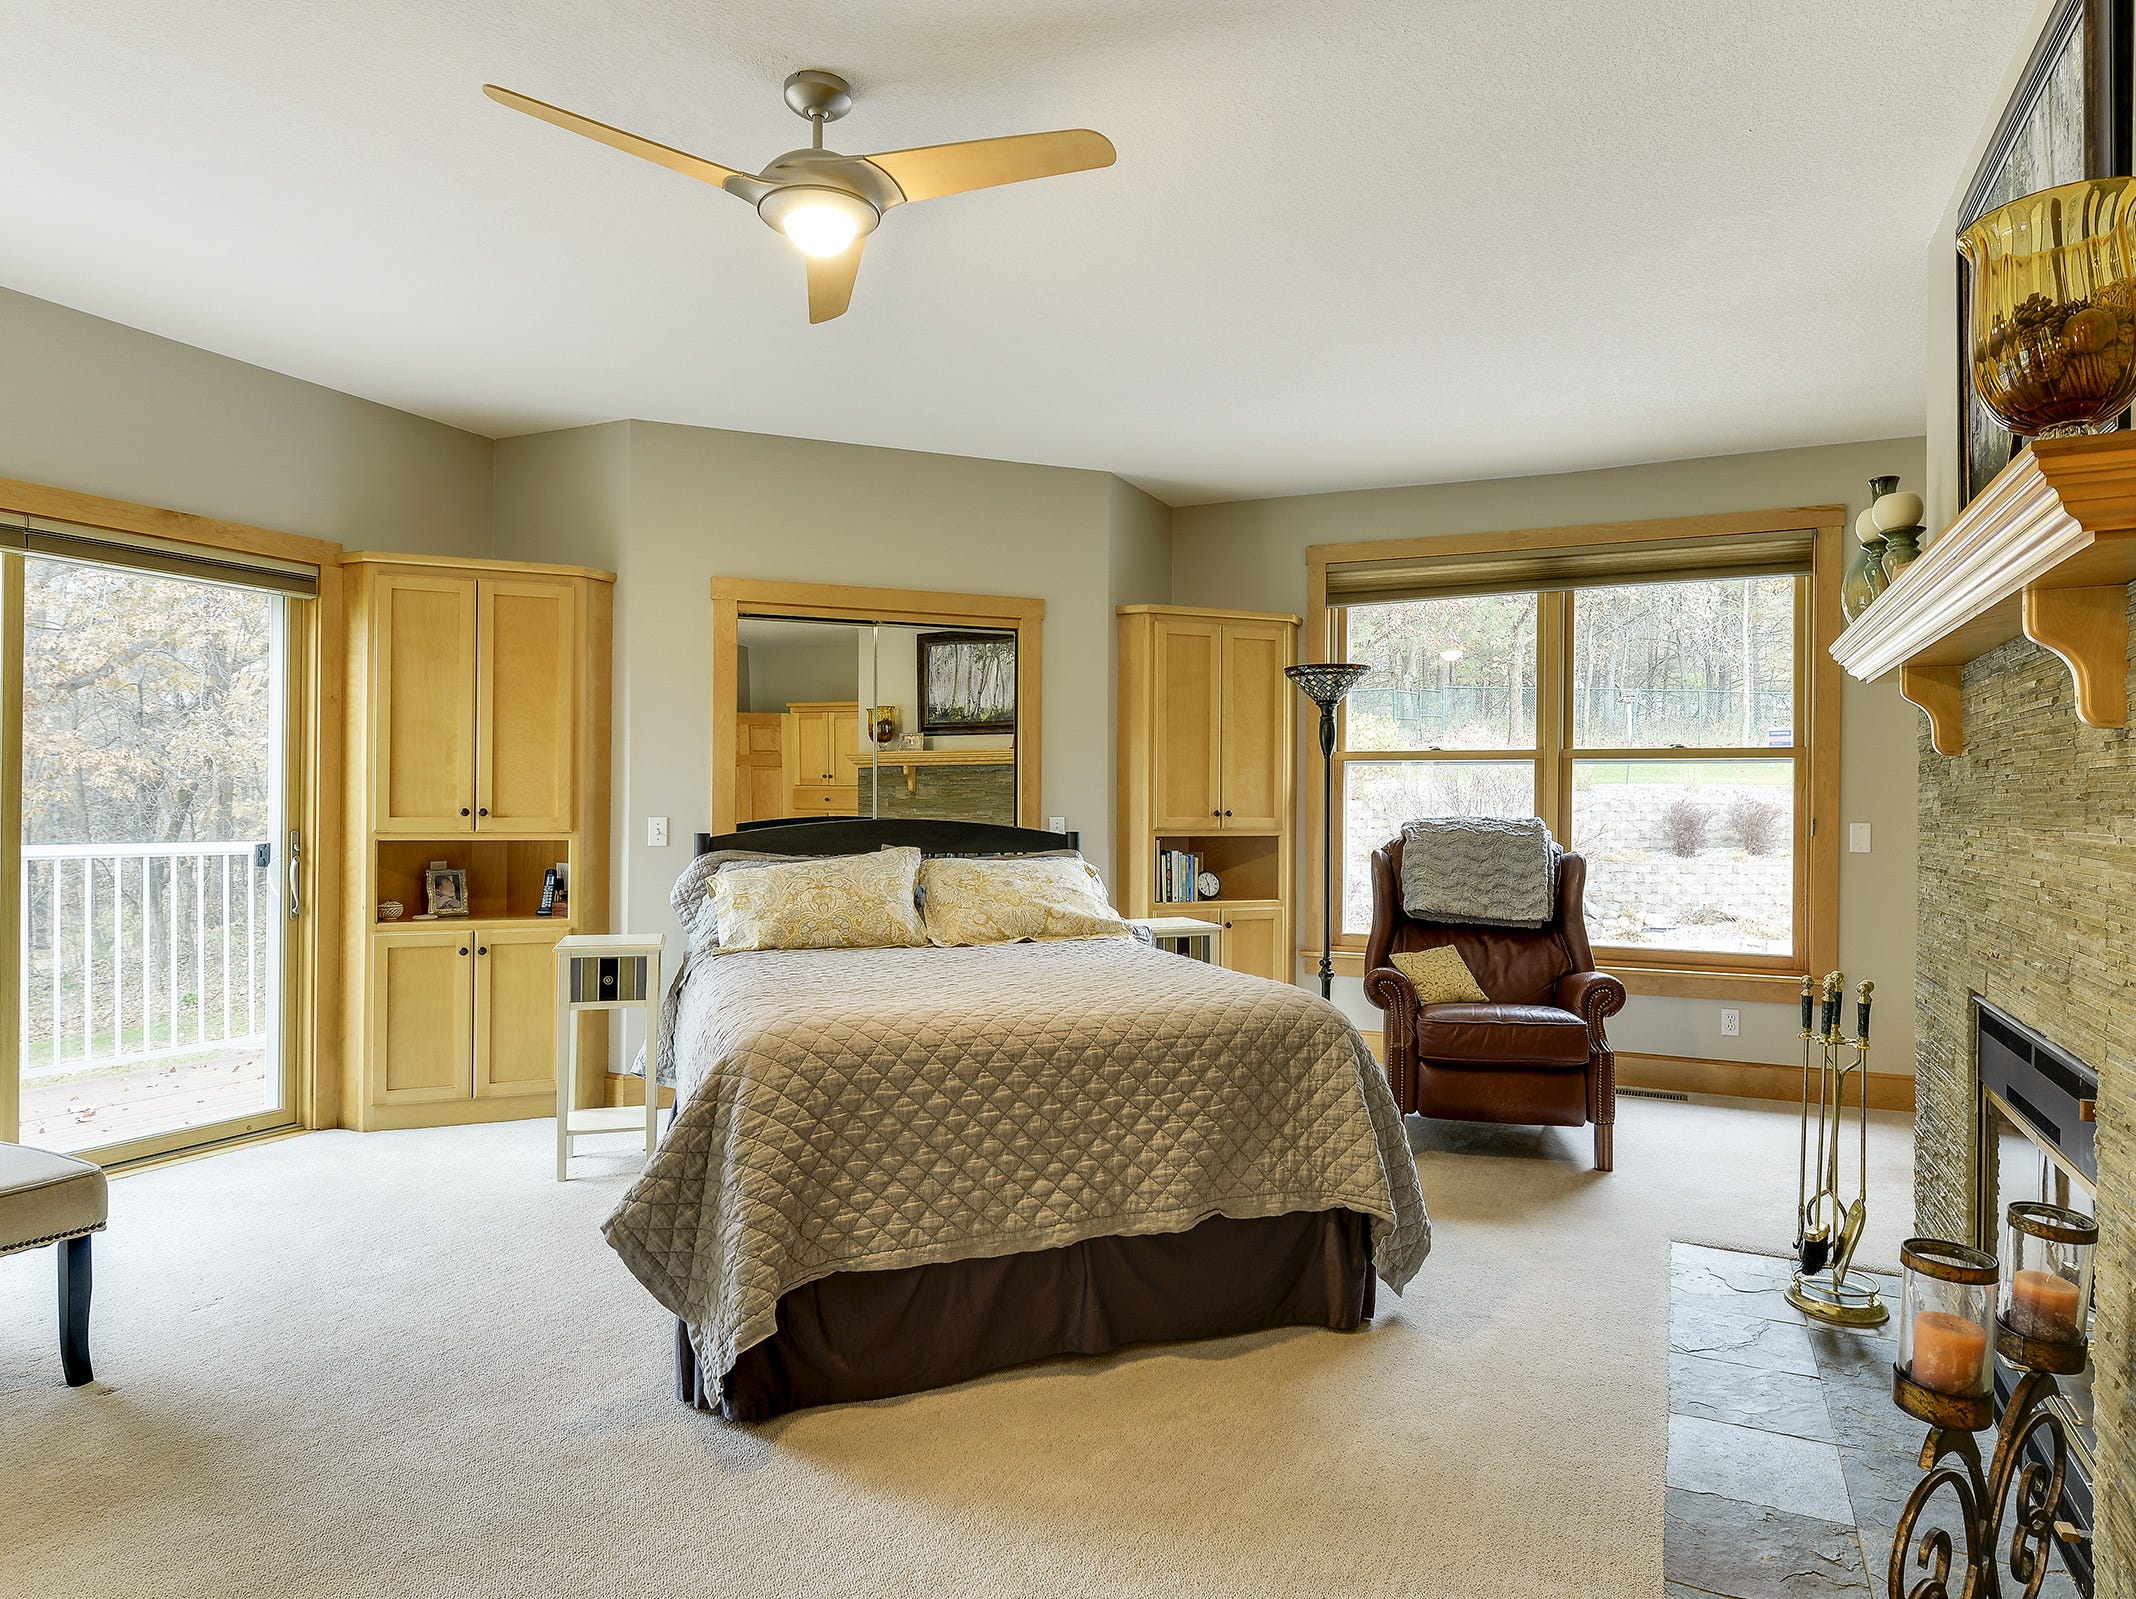 The master suite has been renovated with a stone fireplace that adds ambiance and warmth to the room.